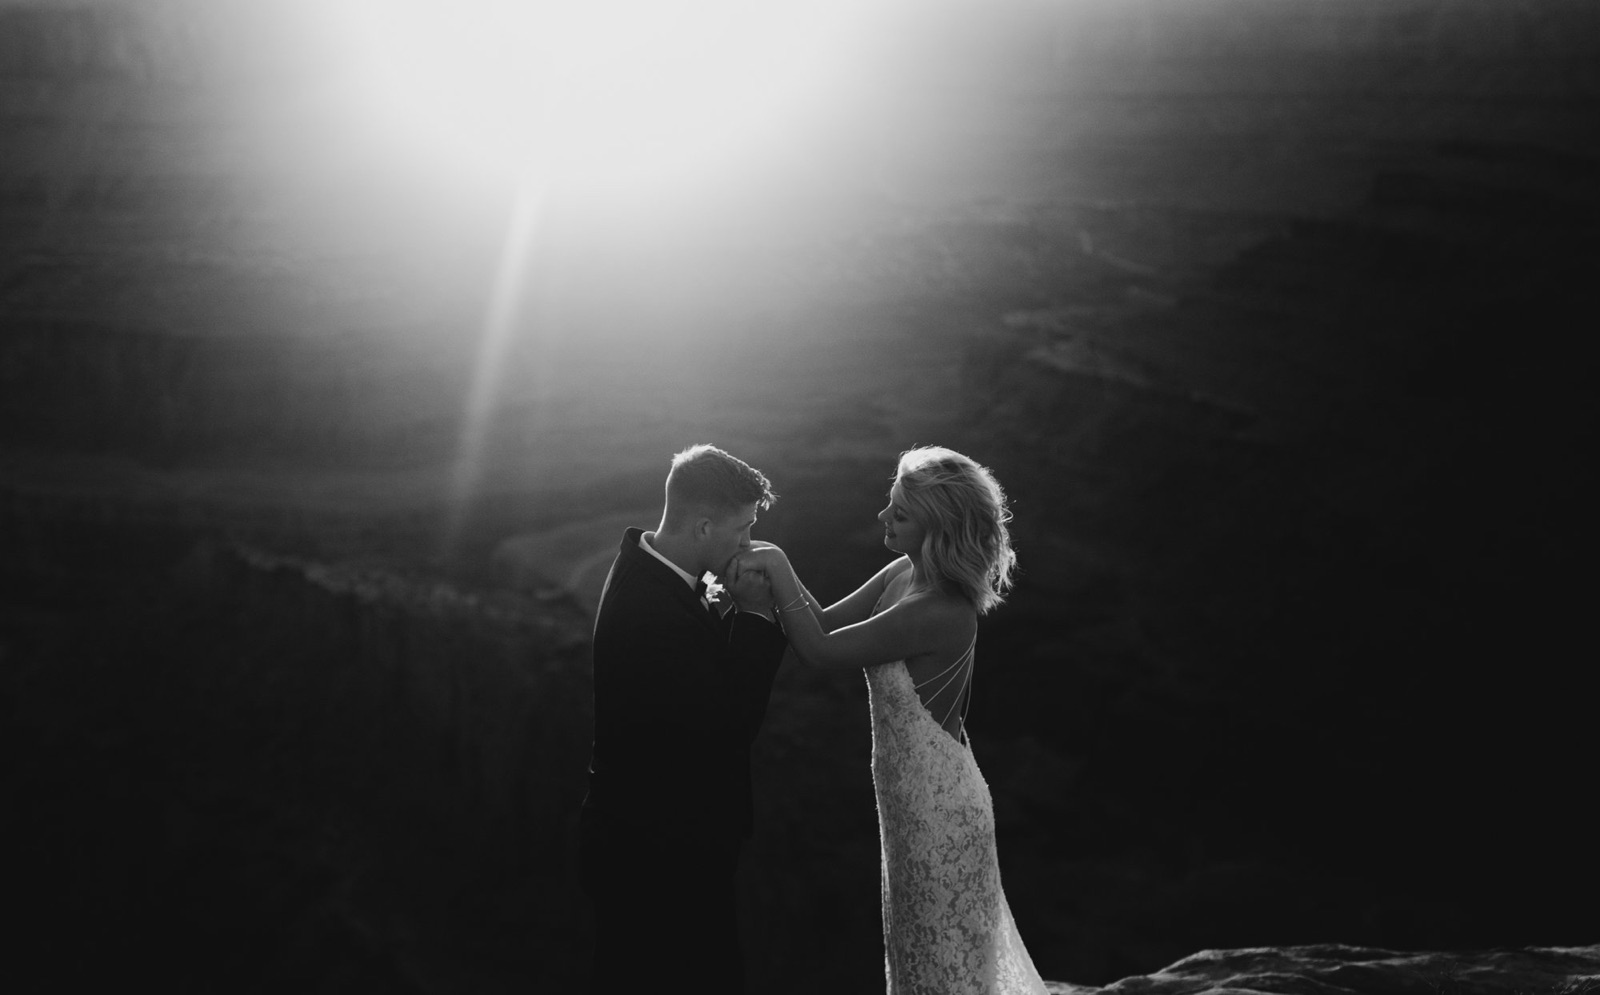 Kylie+Tyler-sunset-145.jpg.jpeg